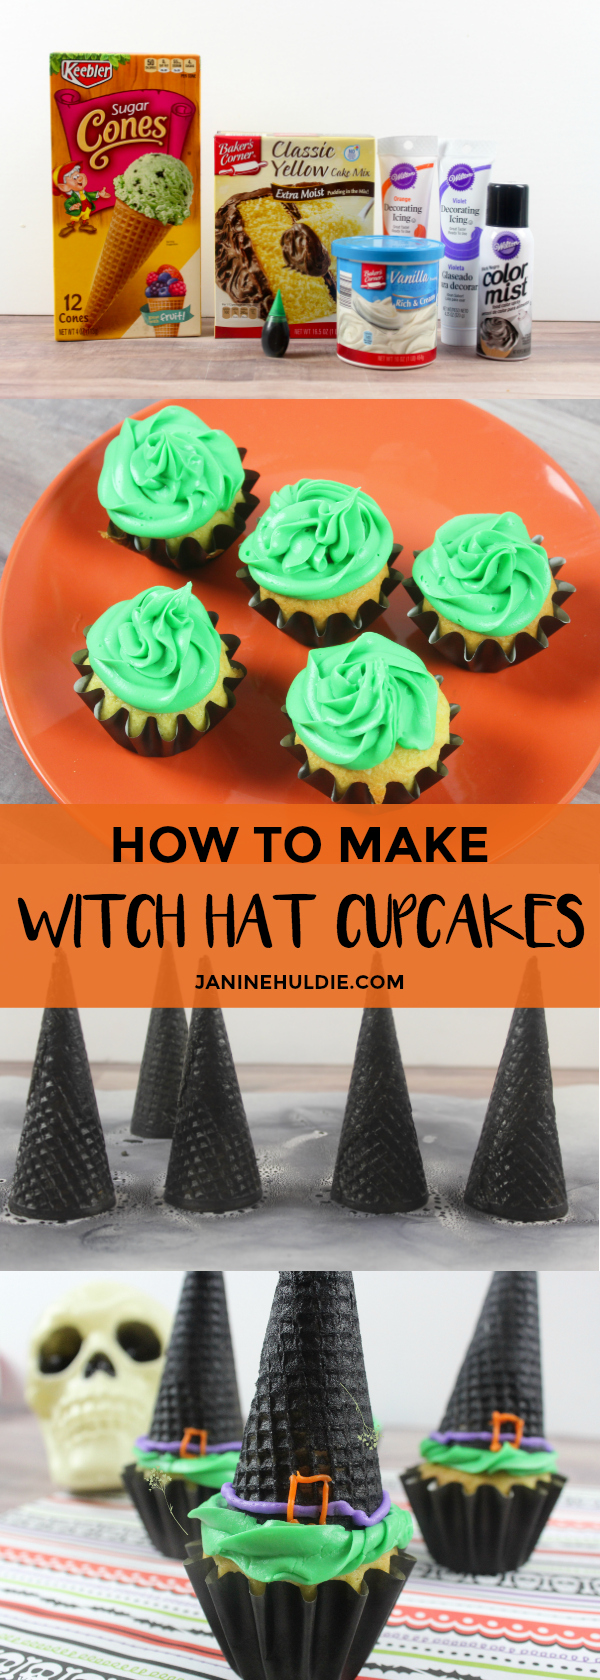 How to Make Witch Hat Cupcakes